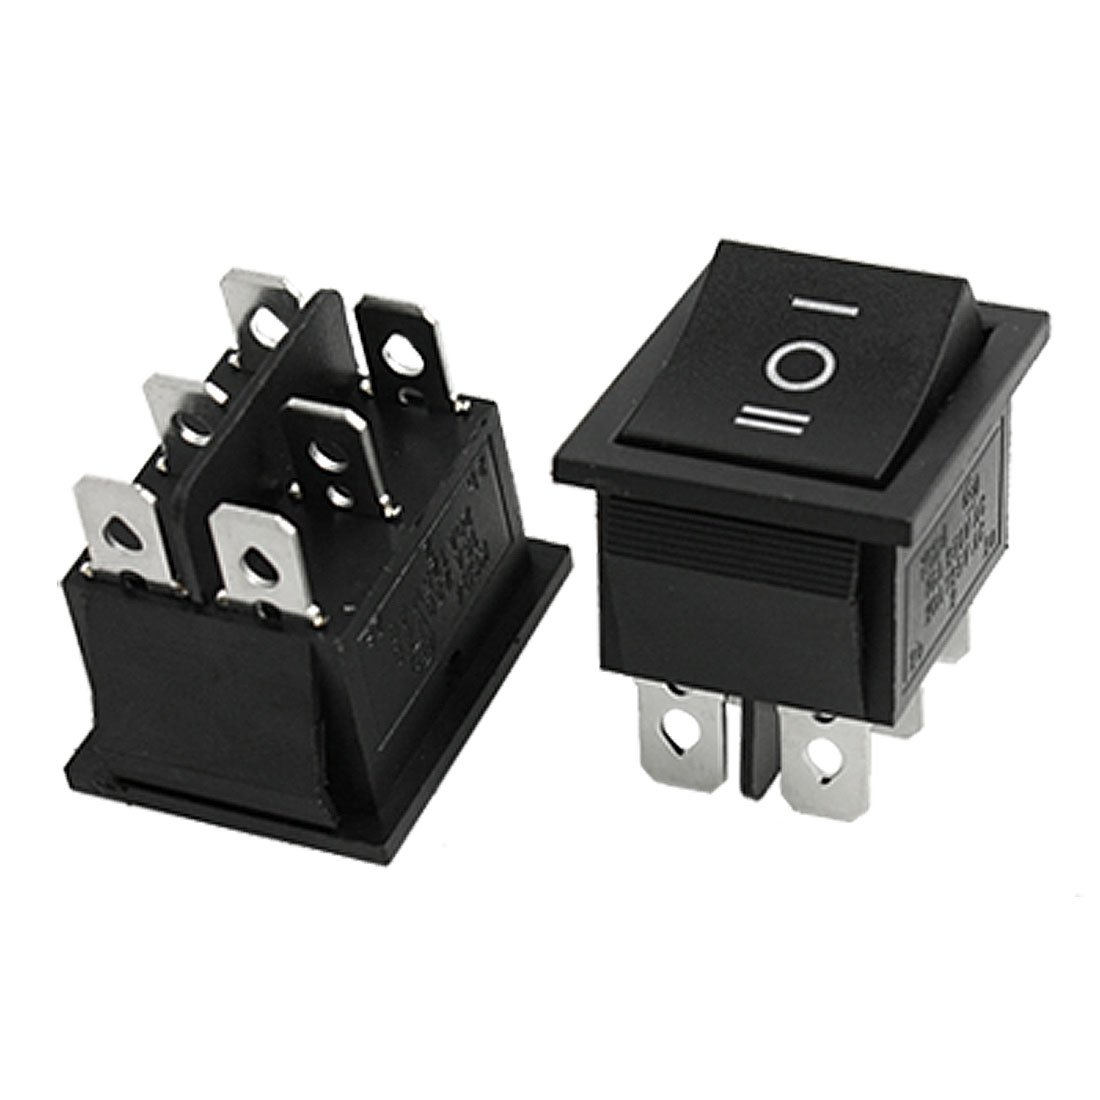 THGS  2pcs 6 Pin DPDT ON-OFF-ON 3 Position Snap in Rocker Switch 15A/250V 20A/125V AC yellow led on off rocker switch w terminal protector set for electric appliances 2 pcs